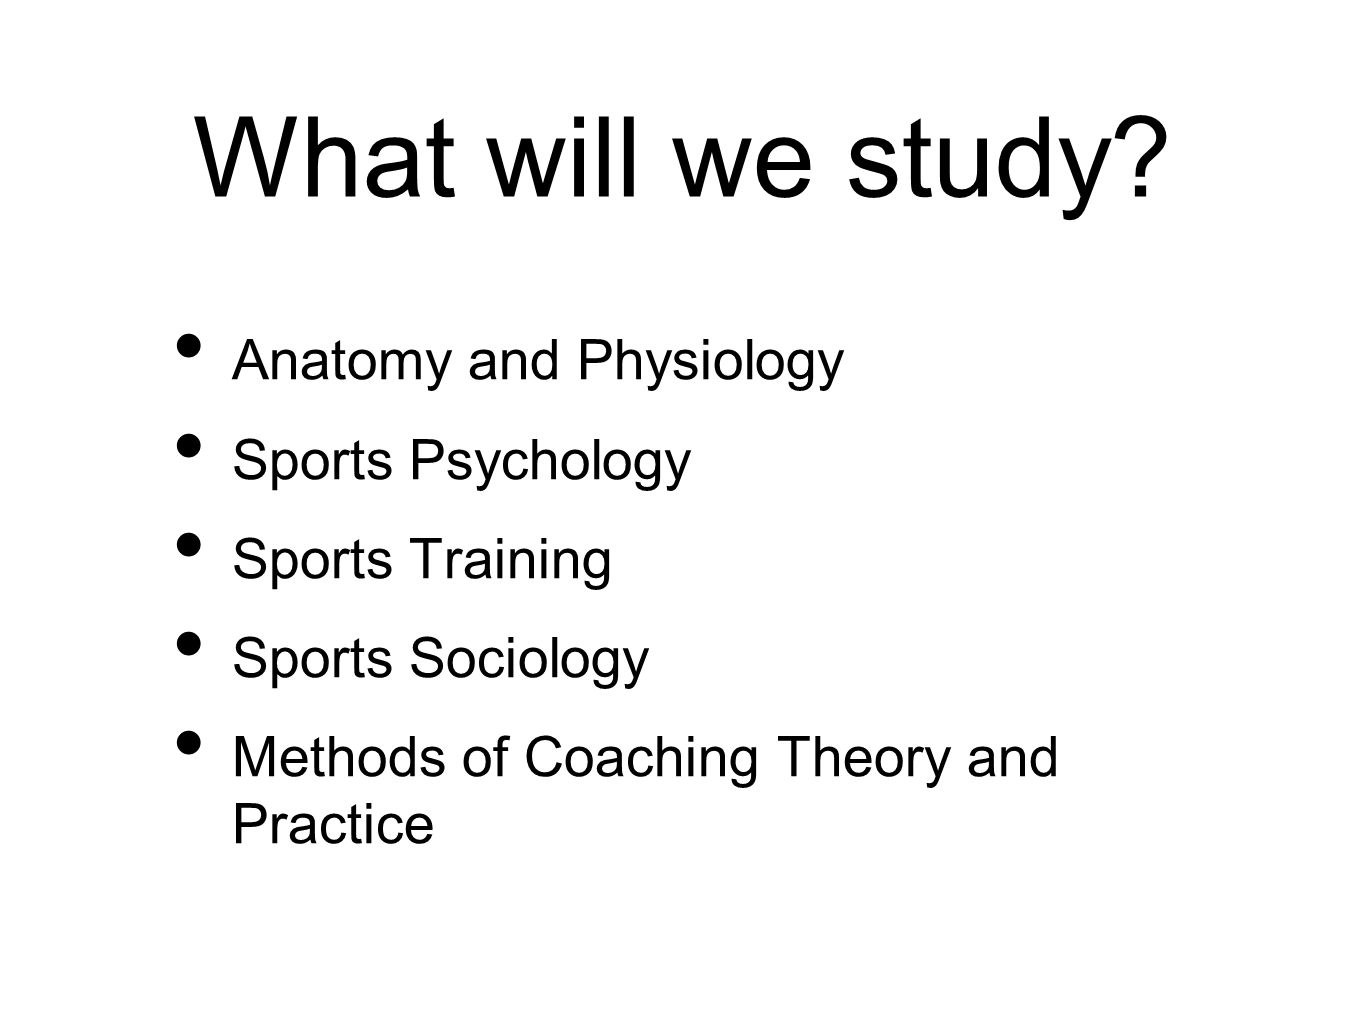 sport and exercise psychology a case study approach Increase your understanding of psychological issues in sport and exercise by exploring key topics including self-confidence, group dynamics, the psychology of injury.